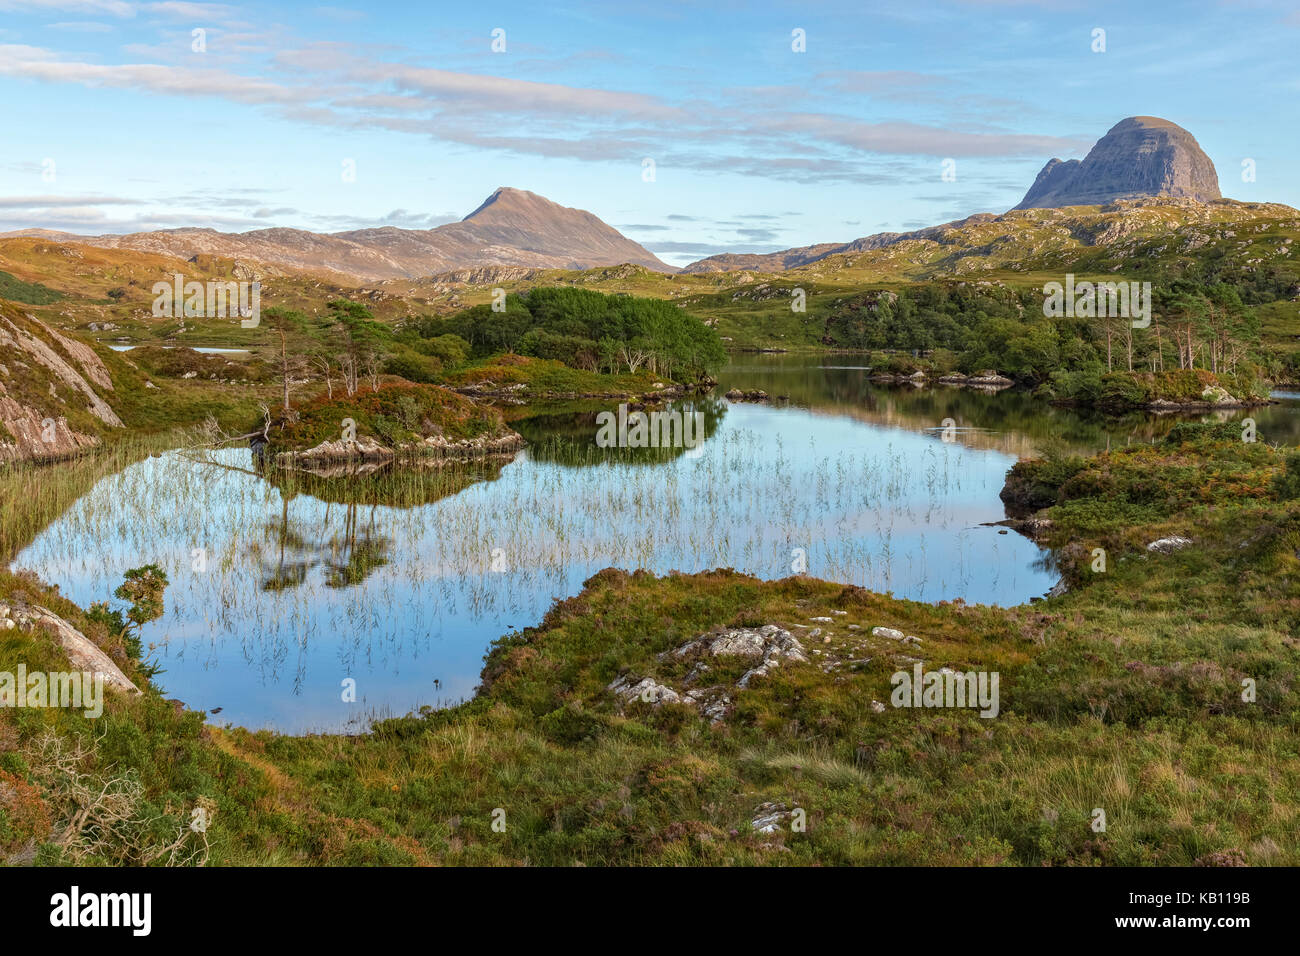 Loch Druim Suardalain, Assynt, Sutherland, Scotland, United Kingdom Stock Photo